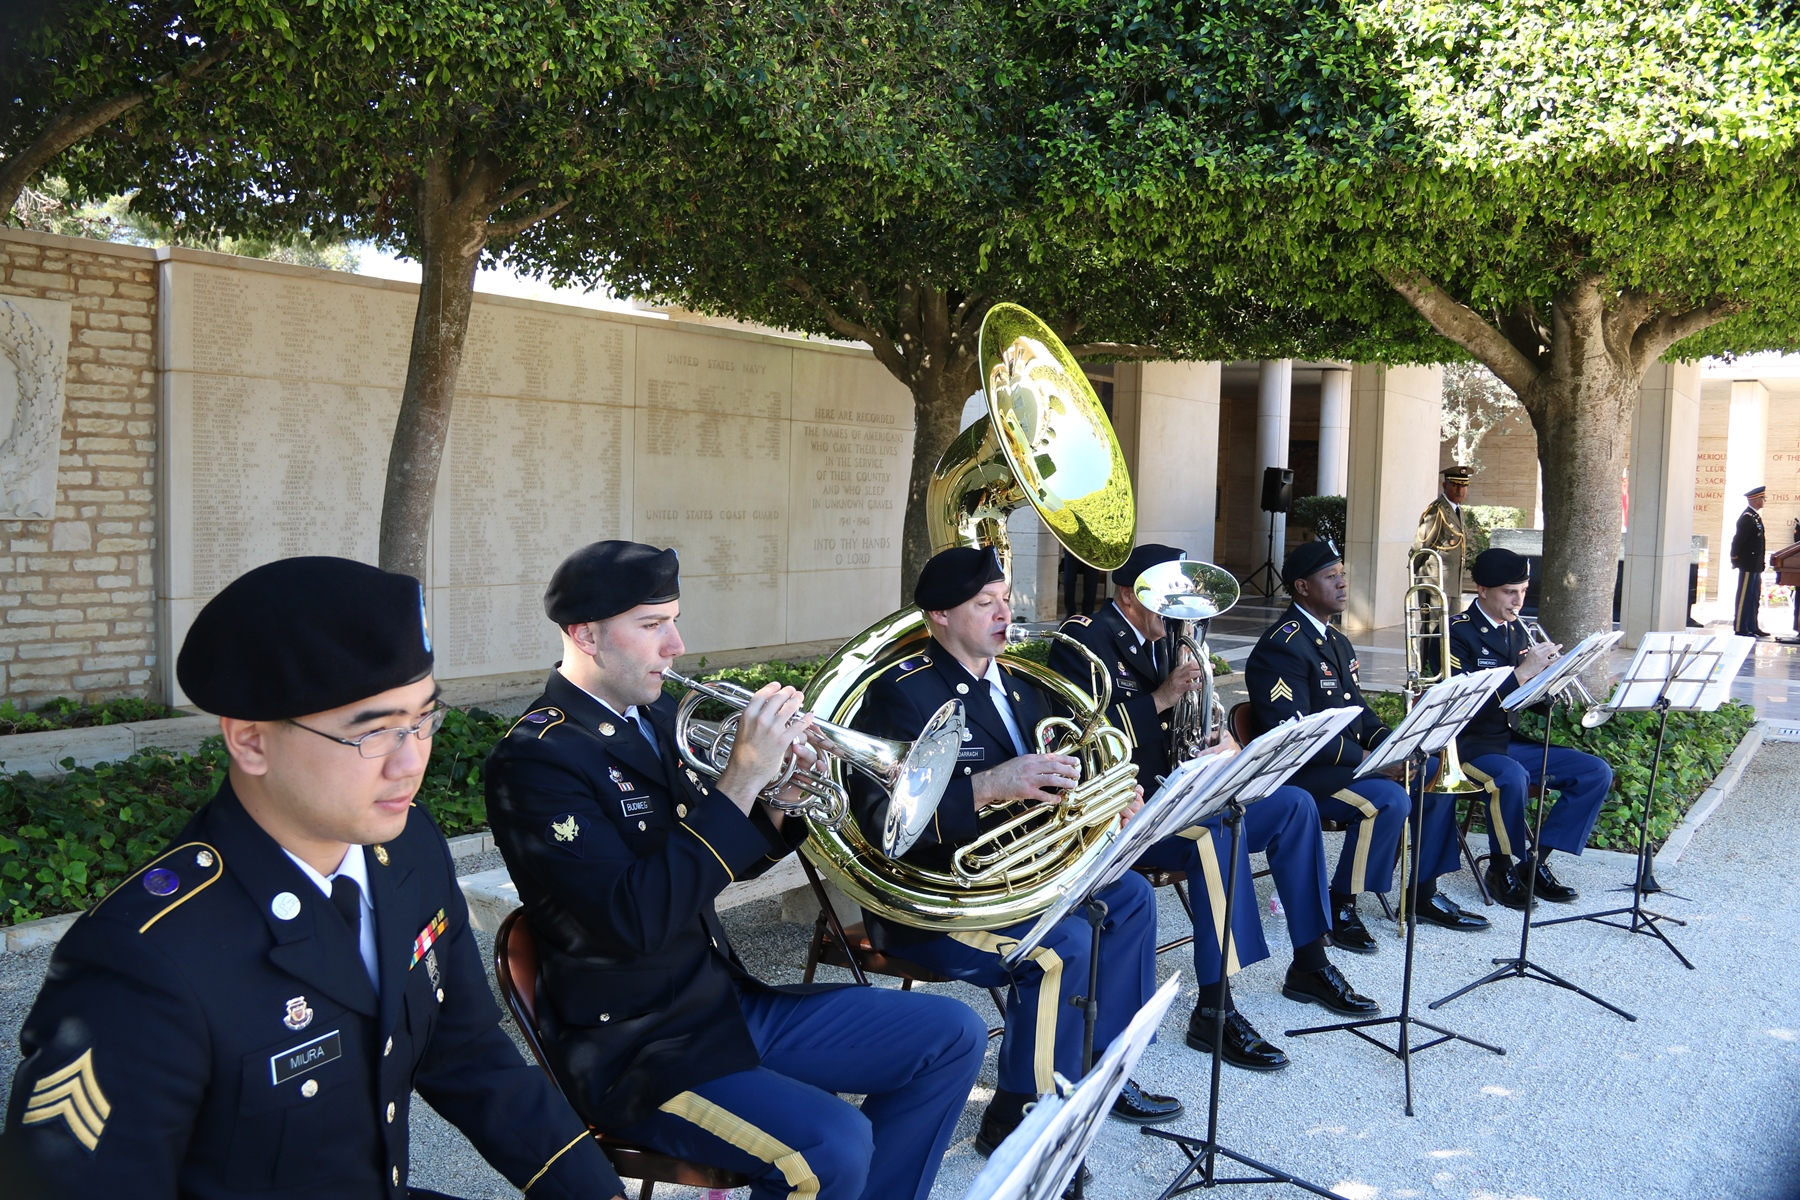 Musicians from the Wyoming National Guard band provide ceremonial music during the Memorial Day ceremony at the North Africa American Cemetery and Memorial in Carthage, Tunisia May 29, 2017. The Wyoming National Guard is partnered with the Tunisian military as part of the U.S. National Guard's State Partnership Program. (U.S. Embassy Tunis photo by Zouhair Sfaxi/Released)